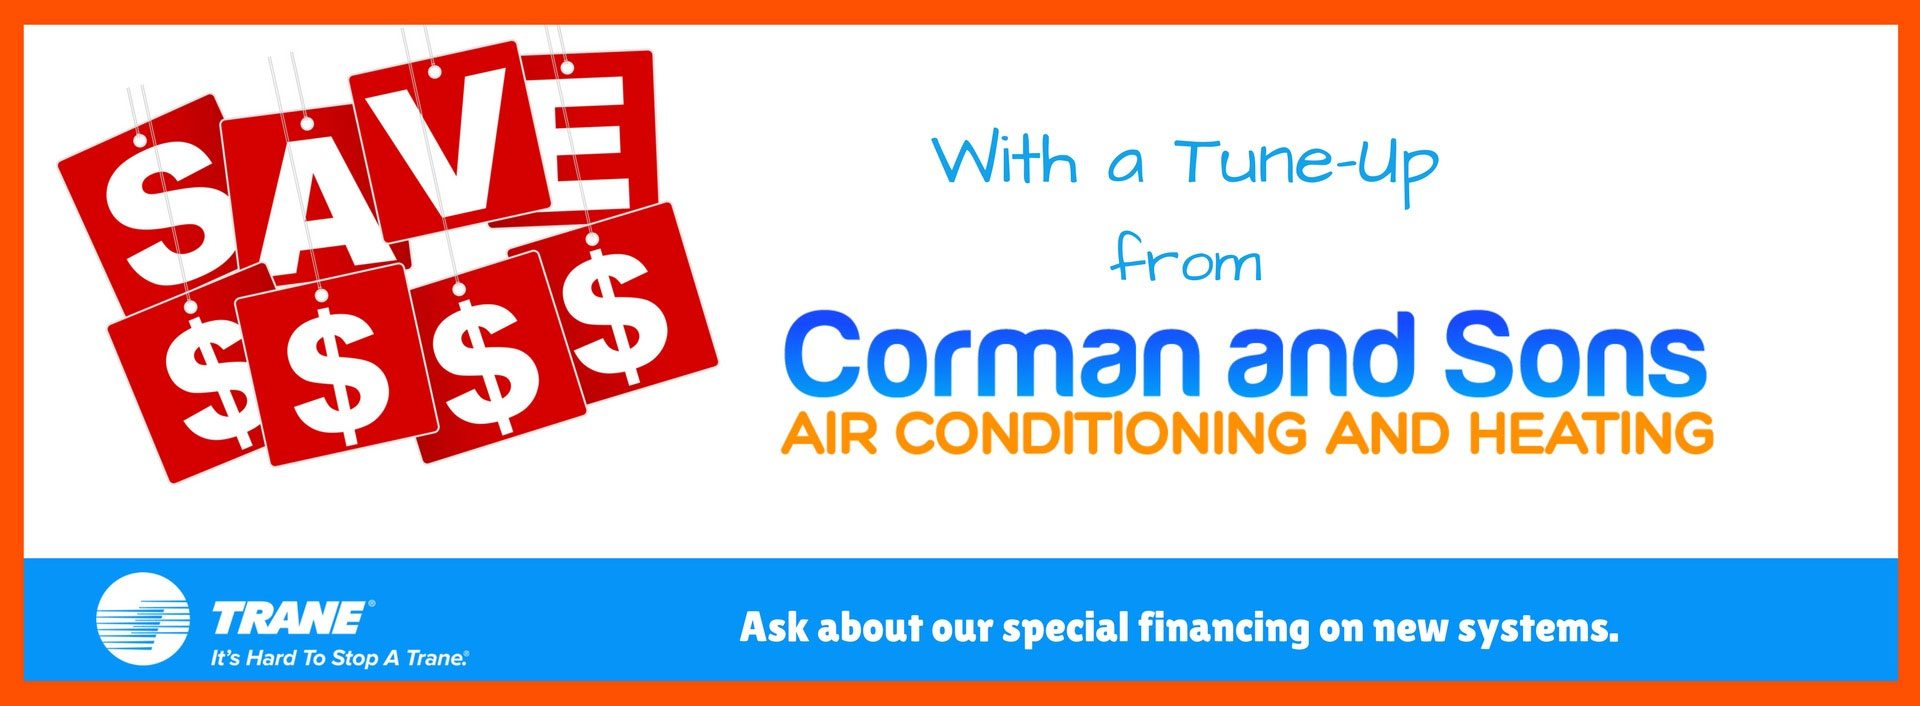 AC-Tuneup-and-Maintenance-Howey-in-the-hills-Florida